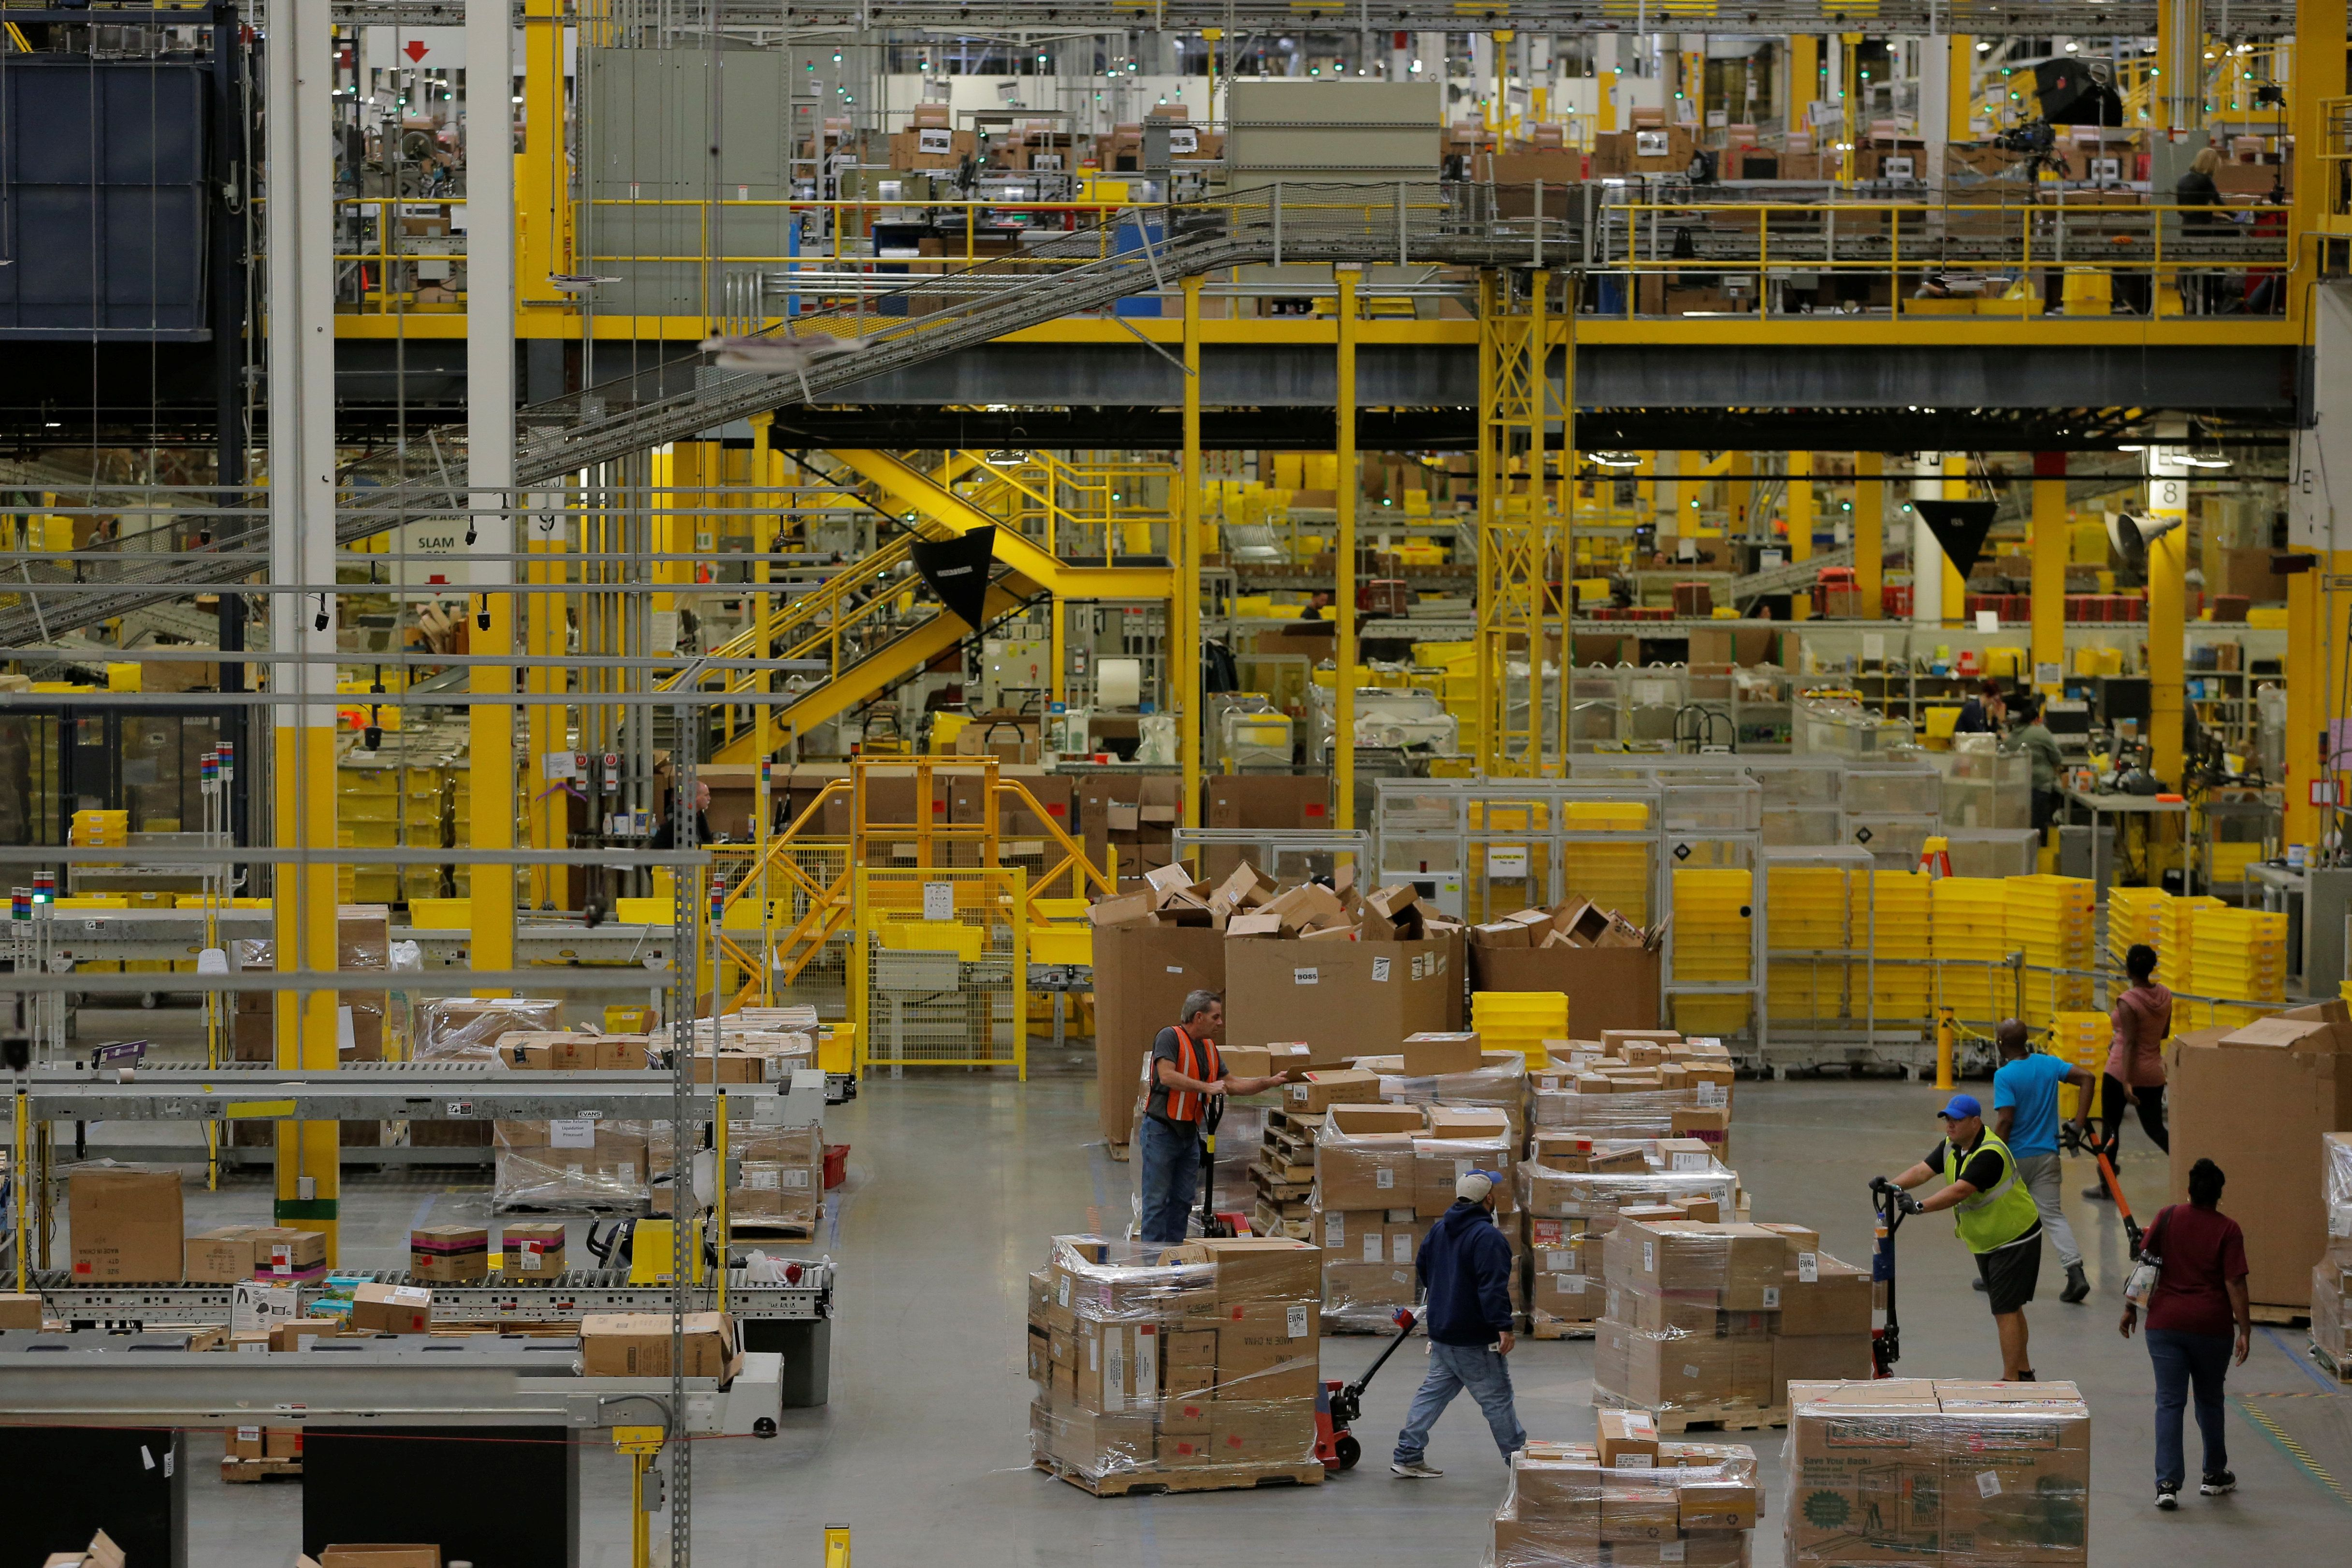 Discussion on this topic: Amazon warehouse worker slams working conditions in , amazon-warehouse-worker-slams-working-conditions-in/